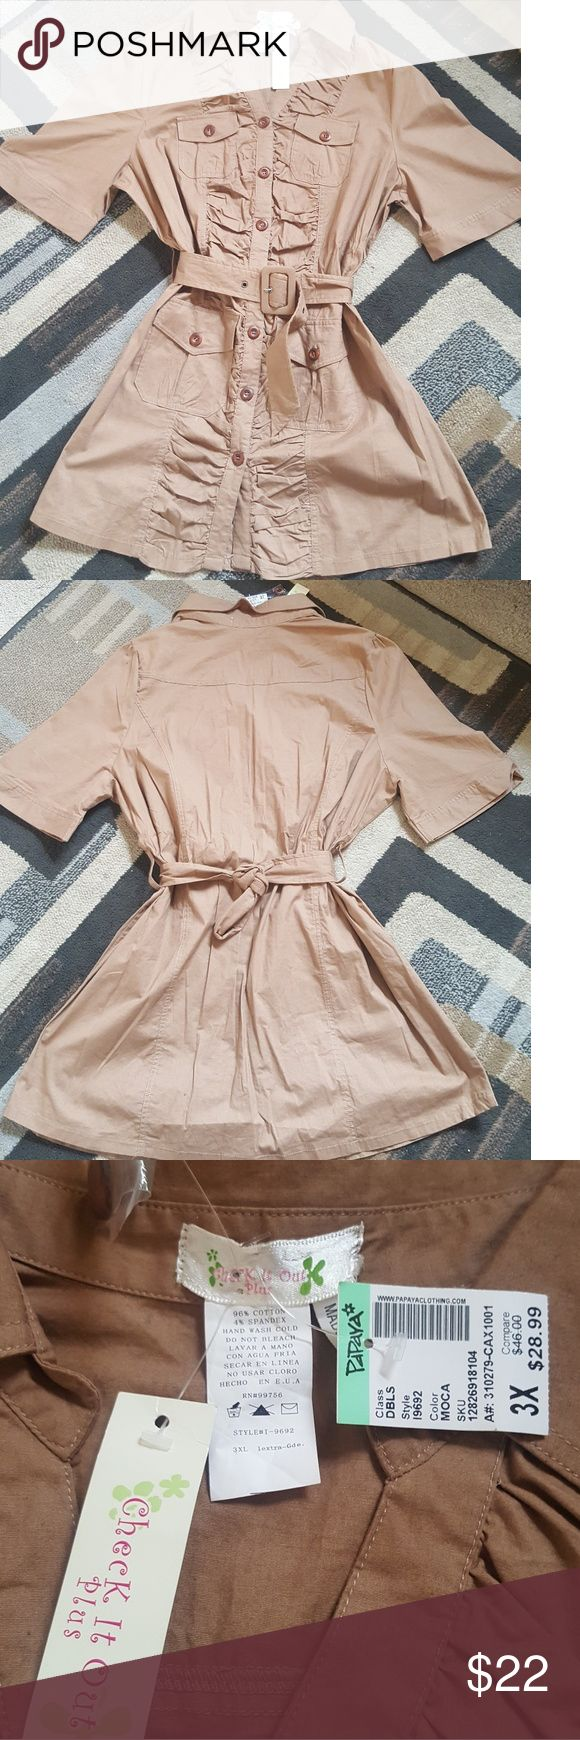 * New* Khaki Plus size Shirt Dress Gorgeous plus size Shirt dress great to wear alone or with leggings, button down  front, adjustable belt, four functioning pockets. Has spandex stretch. 96% cotton, 4% spandex. Tops Button Down Shirts